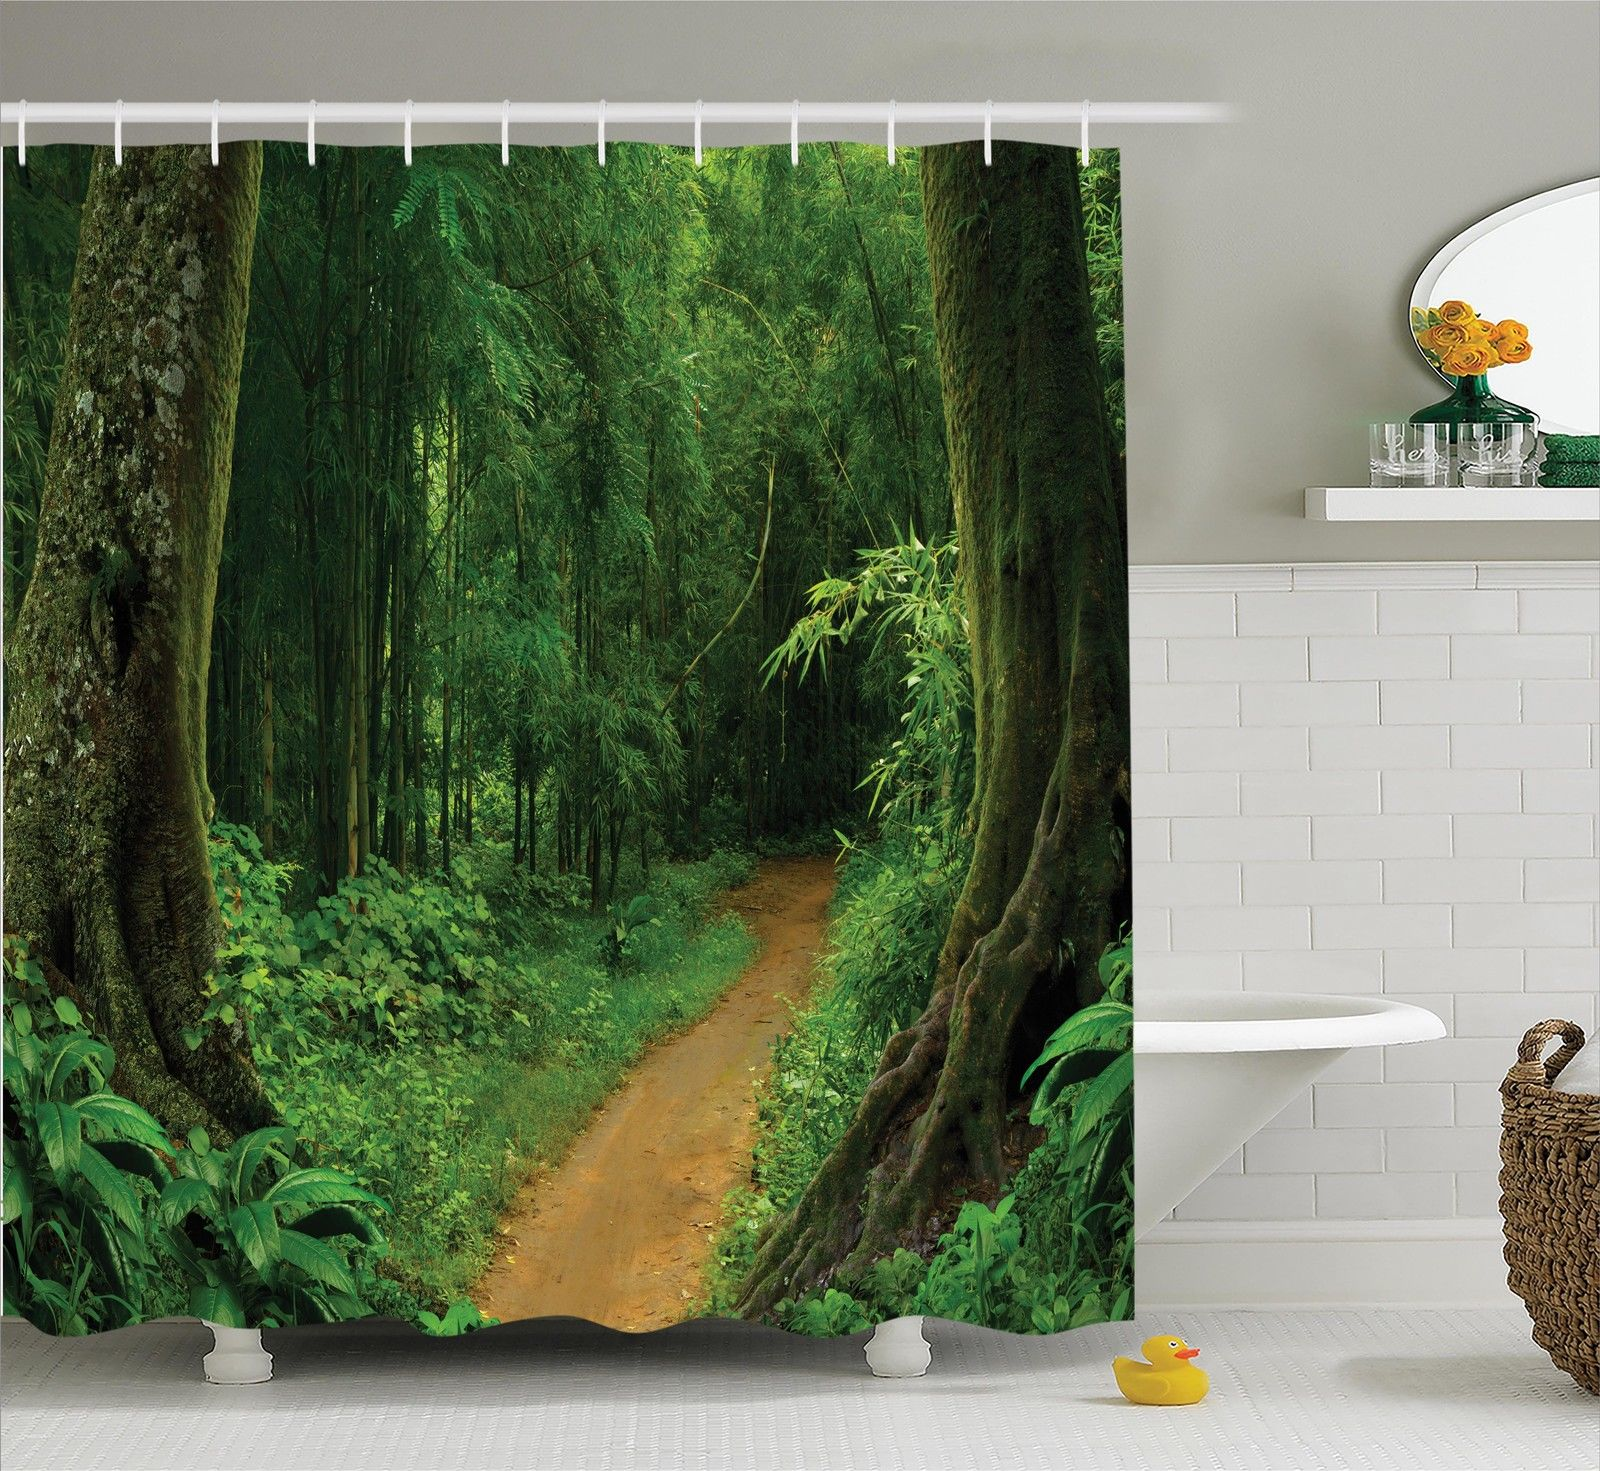 Jungle shower curtain escaped to nature themed path green Nature inspired shower curtains